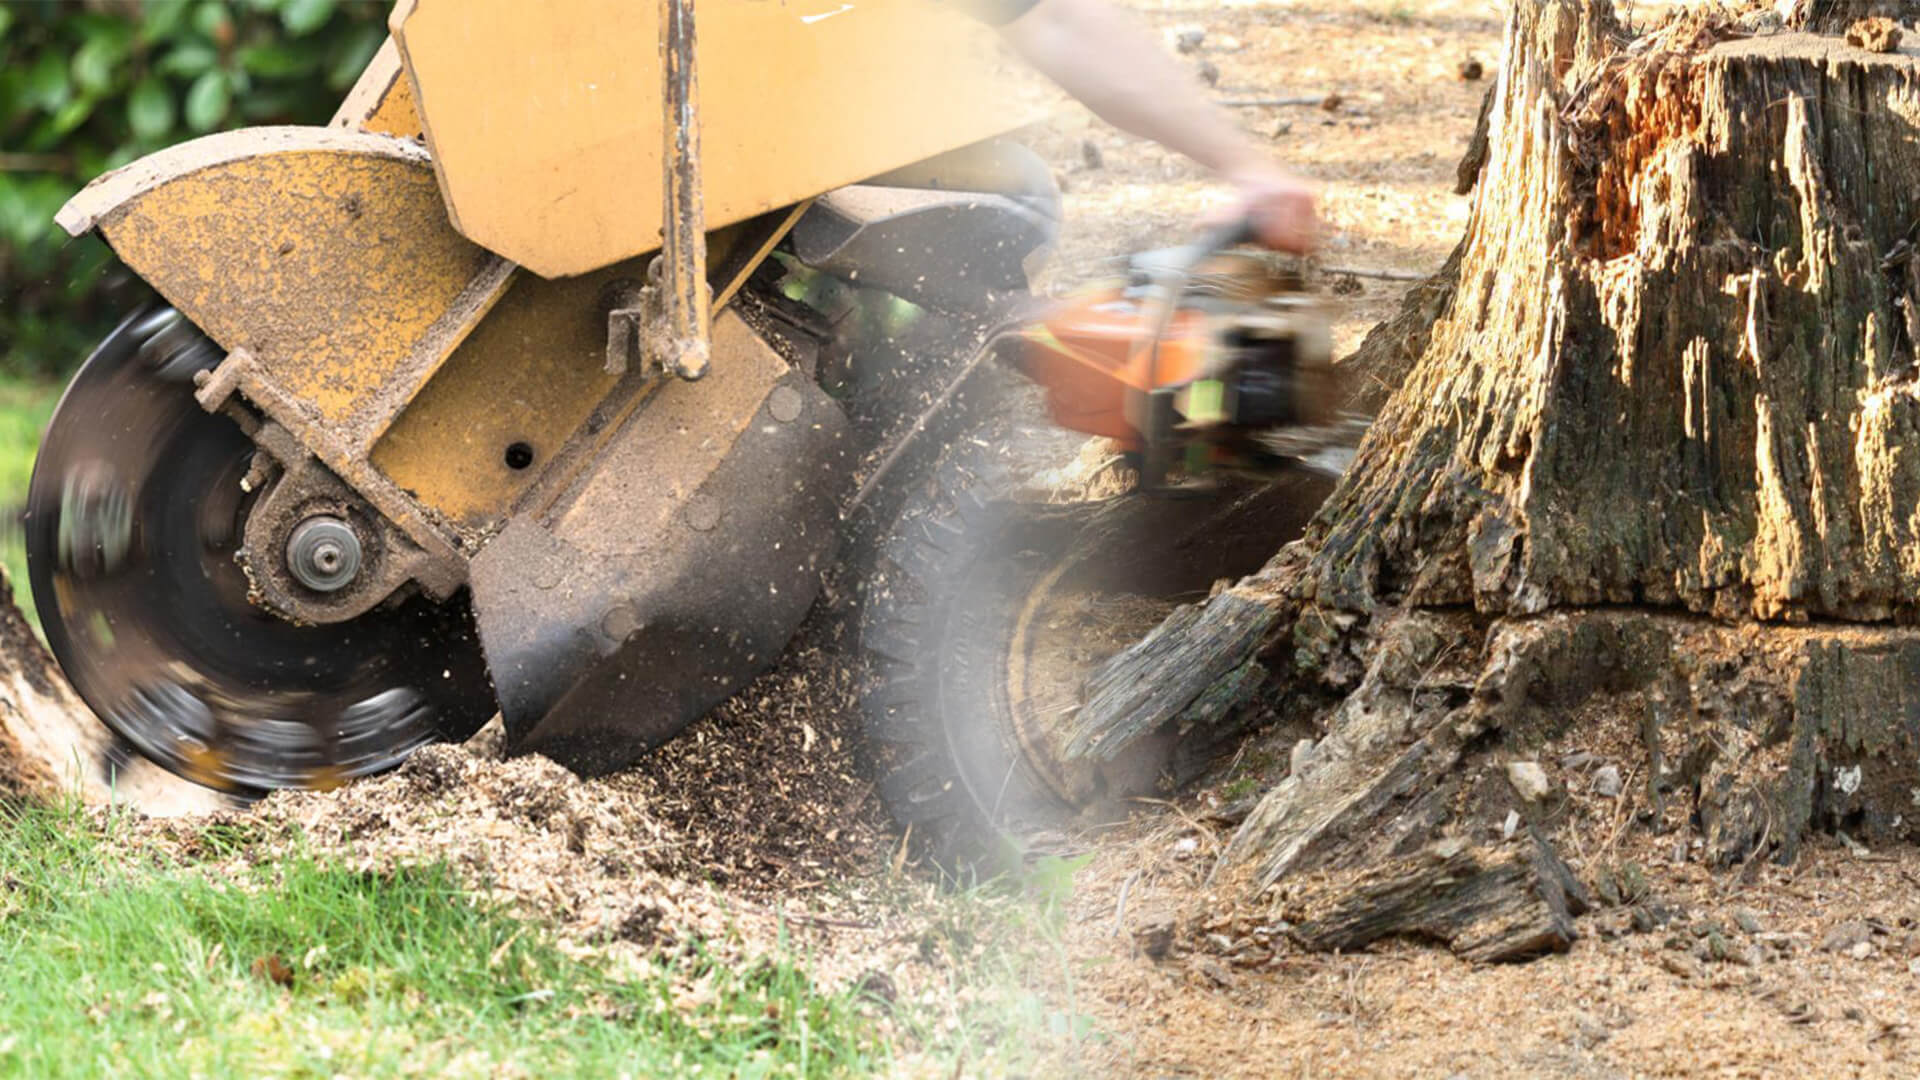 Stump grinding & removal-Miramar FL Tree Trimming and Stump Grinding Services-We Offer Tree Trimming Services, Tree Removal, Tree Pruning, Tree Cutting, Residential and Commercial Tree Trimming Services, Storm Damage, Emergency Tree Removal, Land Clearing, Tree Companies, Tree Care Service, Stump Grinding, and we're the Best Tree Trimming Company Near You Guaranteed!